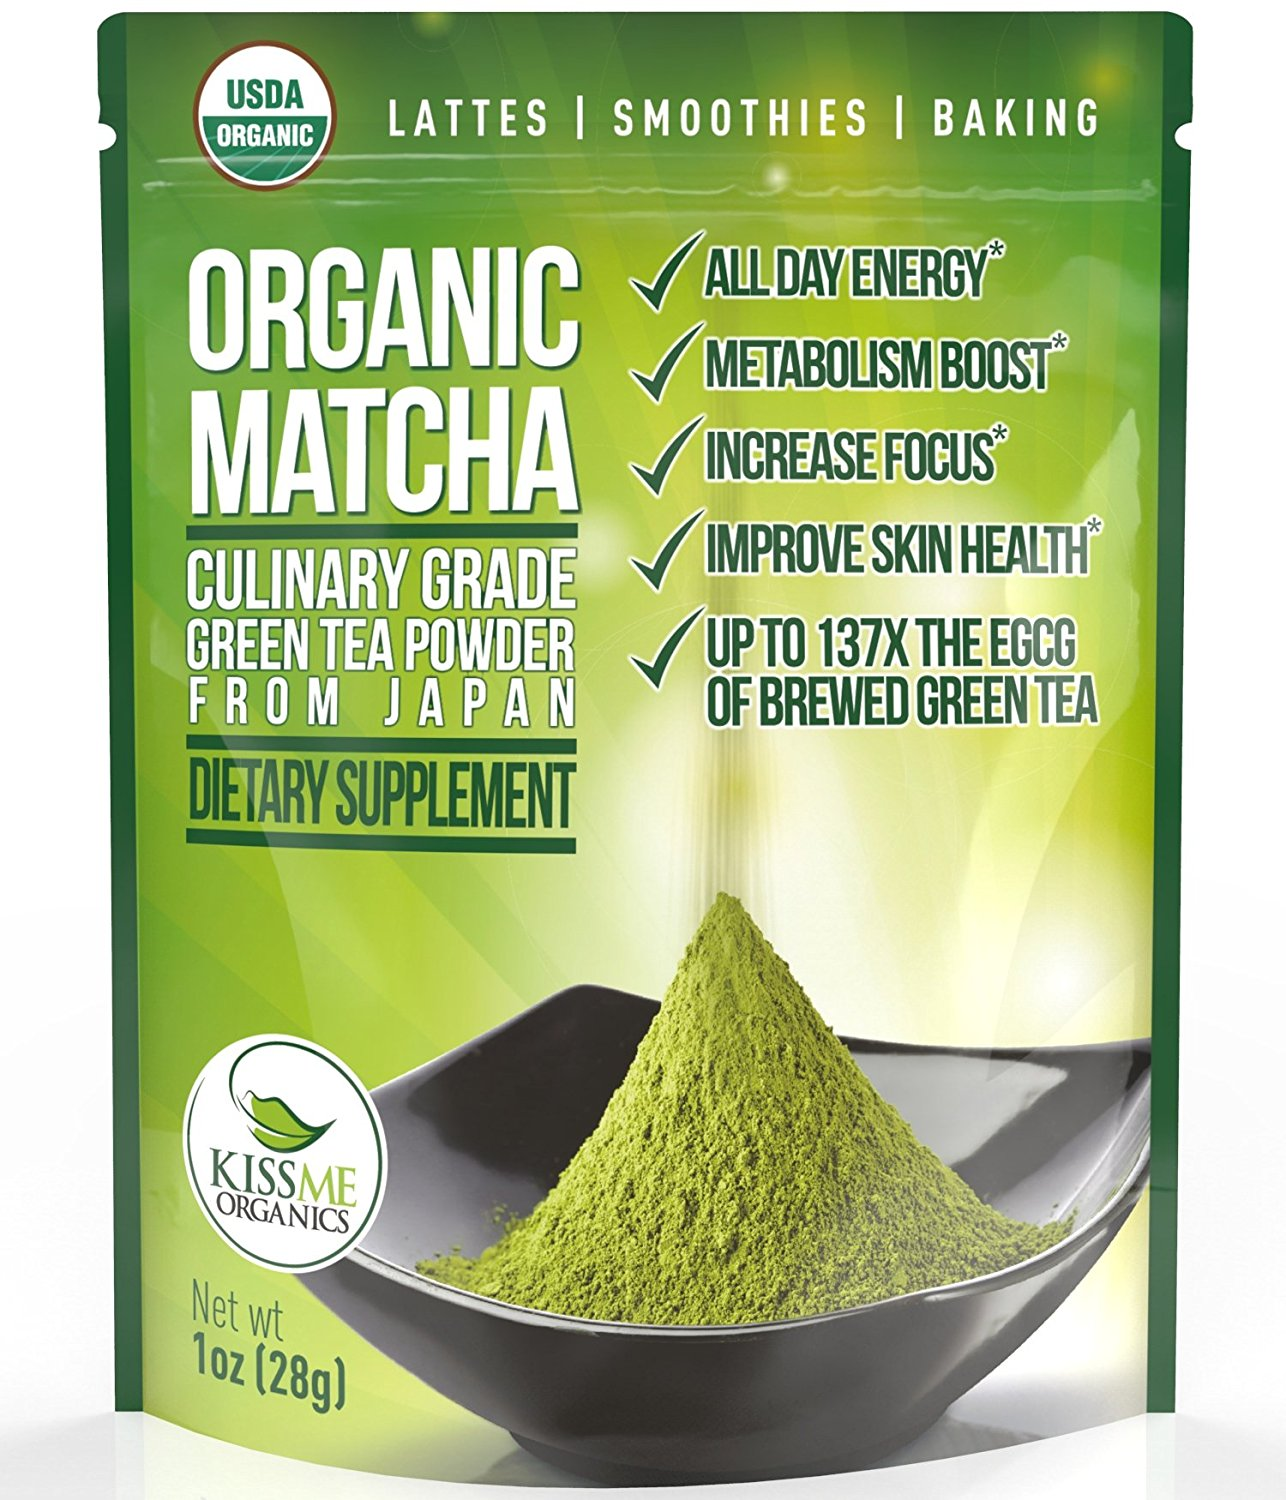 Matcha Green Tea Powder - Powerful Antioxidant Japanese Organic Culinary Grade (1 oz) - For use in Lattes